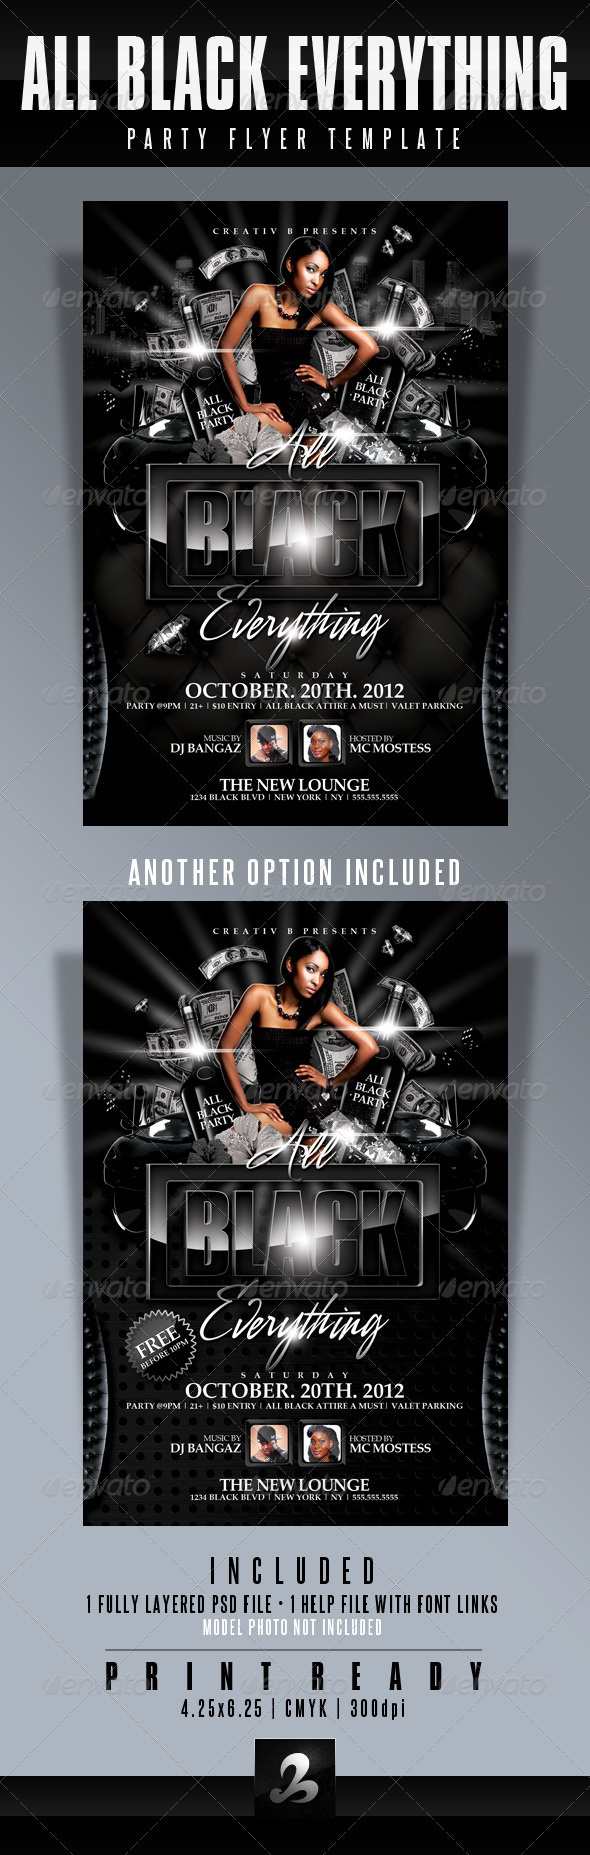 All Black Everything Party Flyer Template - Clubs & Parties Events